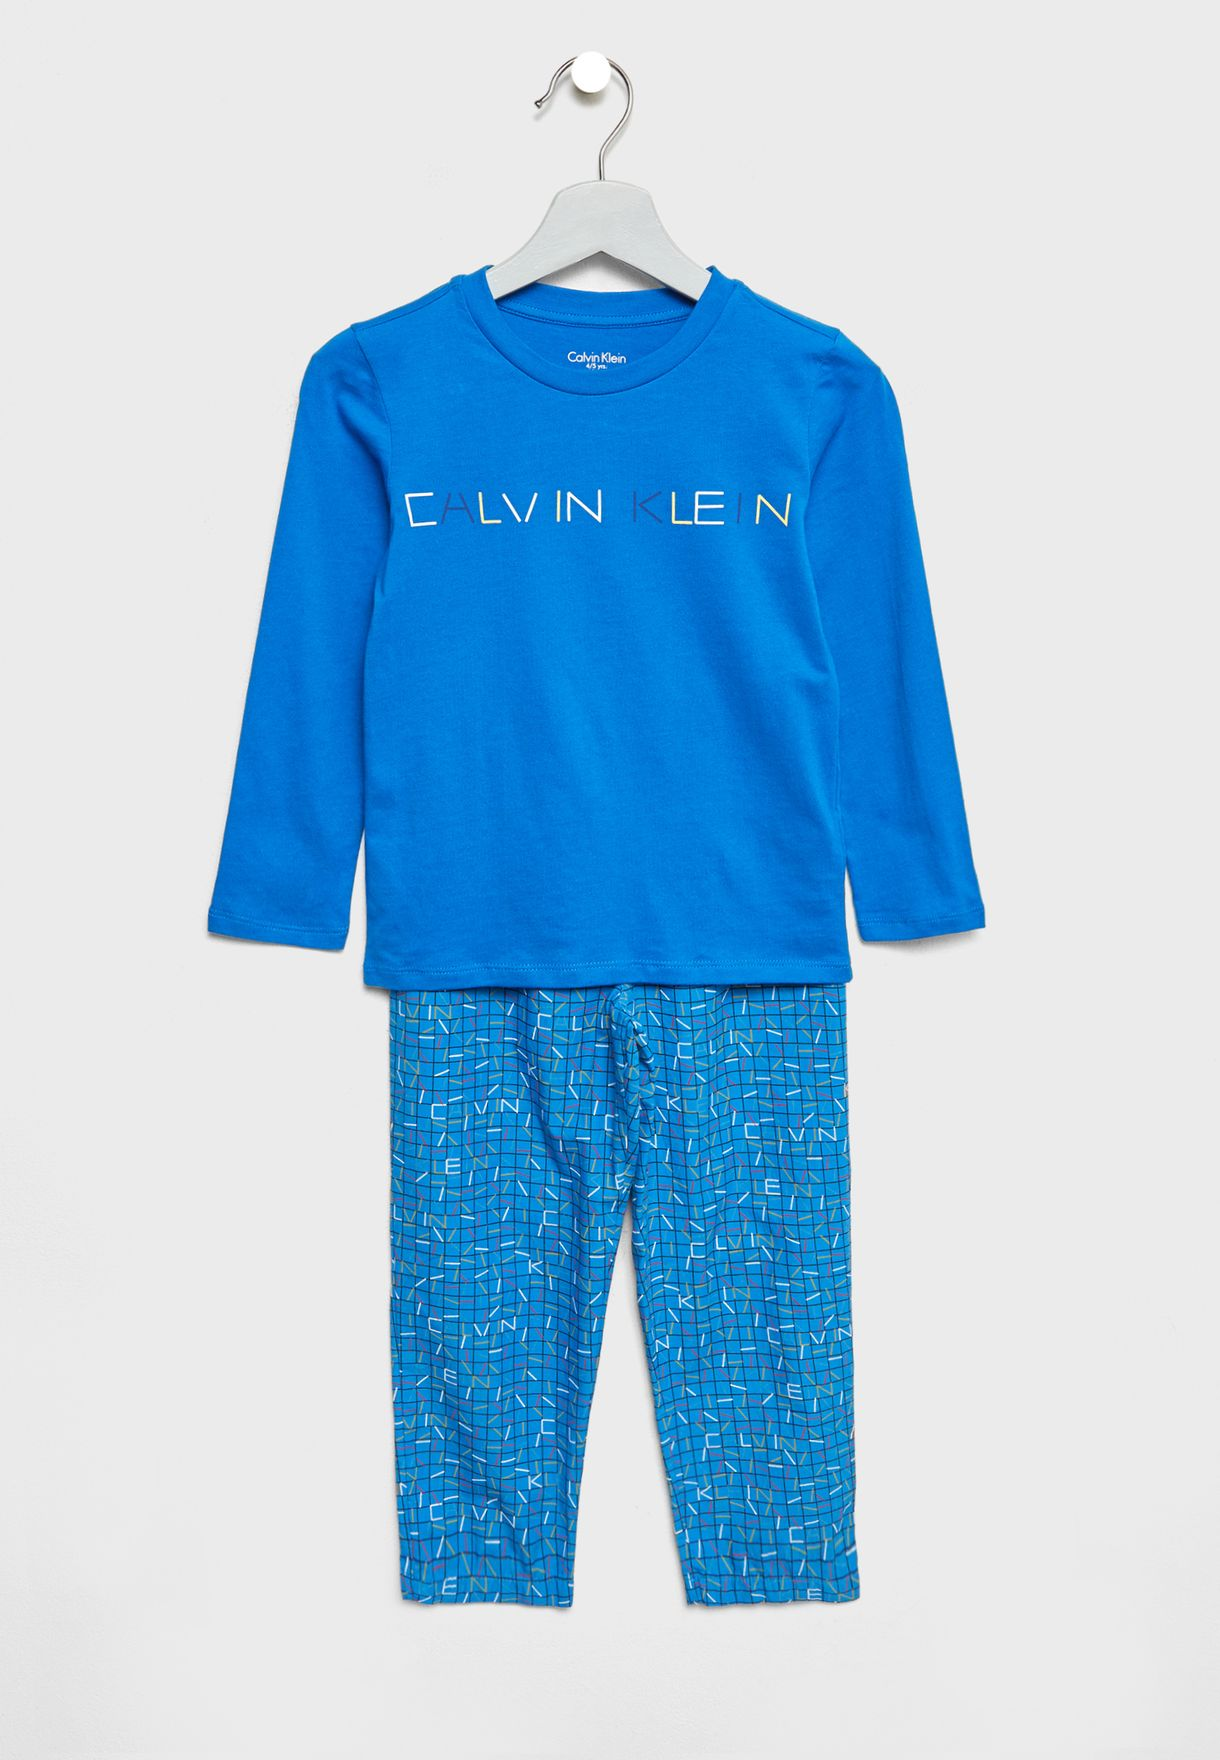 ea0f882a8 Shop Calvin Klein blue Teen T-Shirt + Pyjamas Set B70B700141 for ...